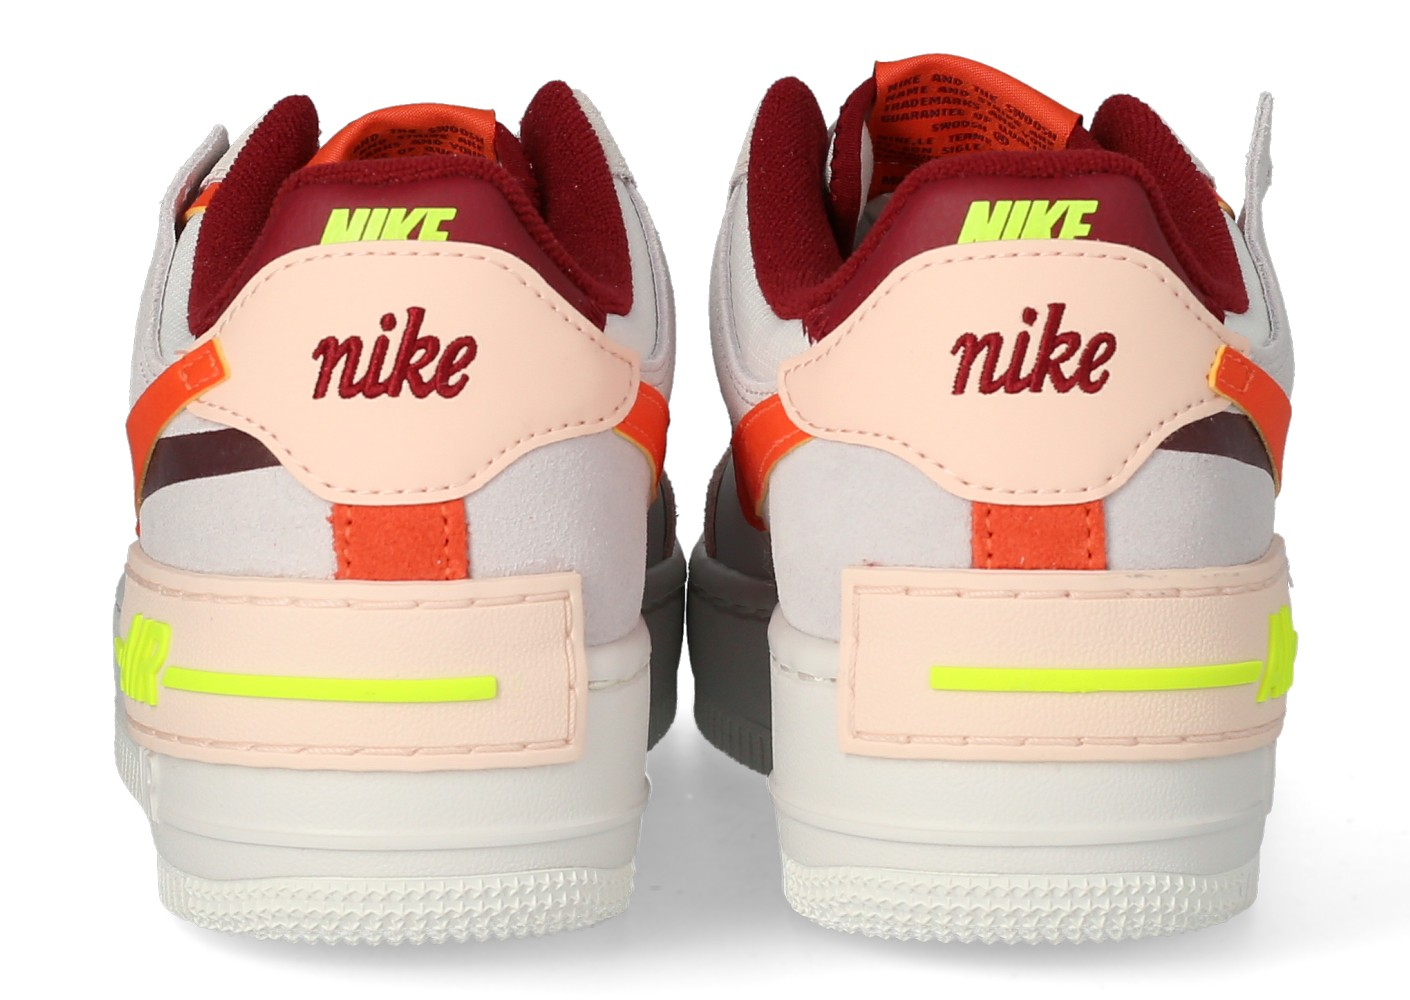 Nike Air Force 1 Shadow Femme Rouge Volt Orange - Chaussures ...